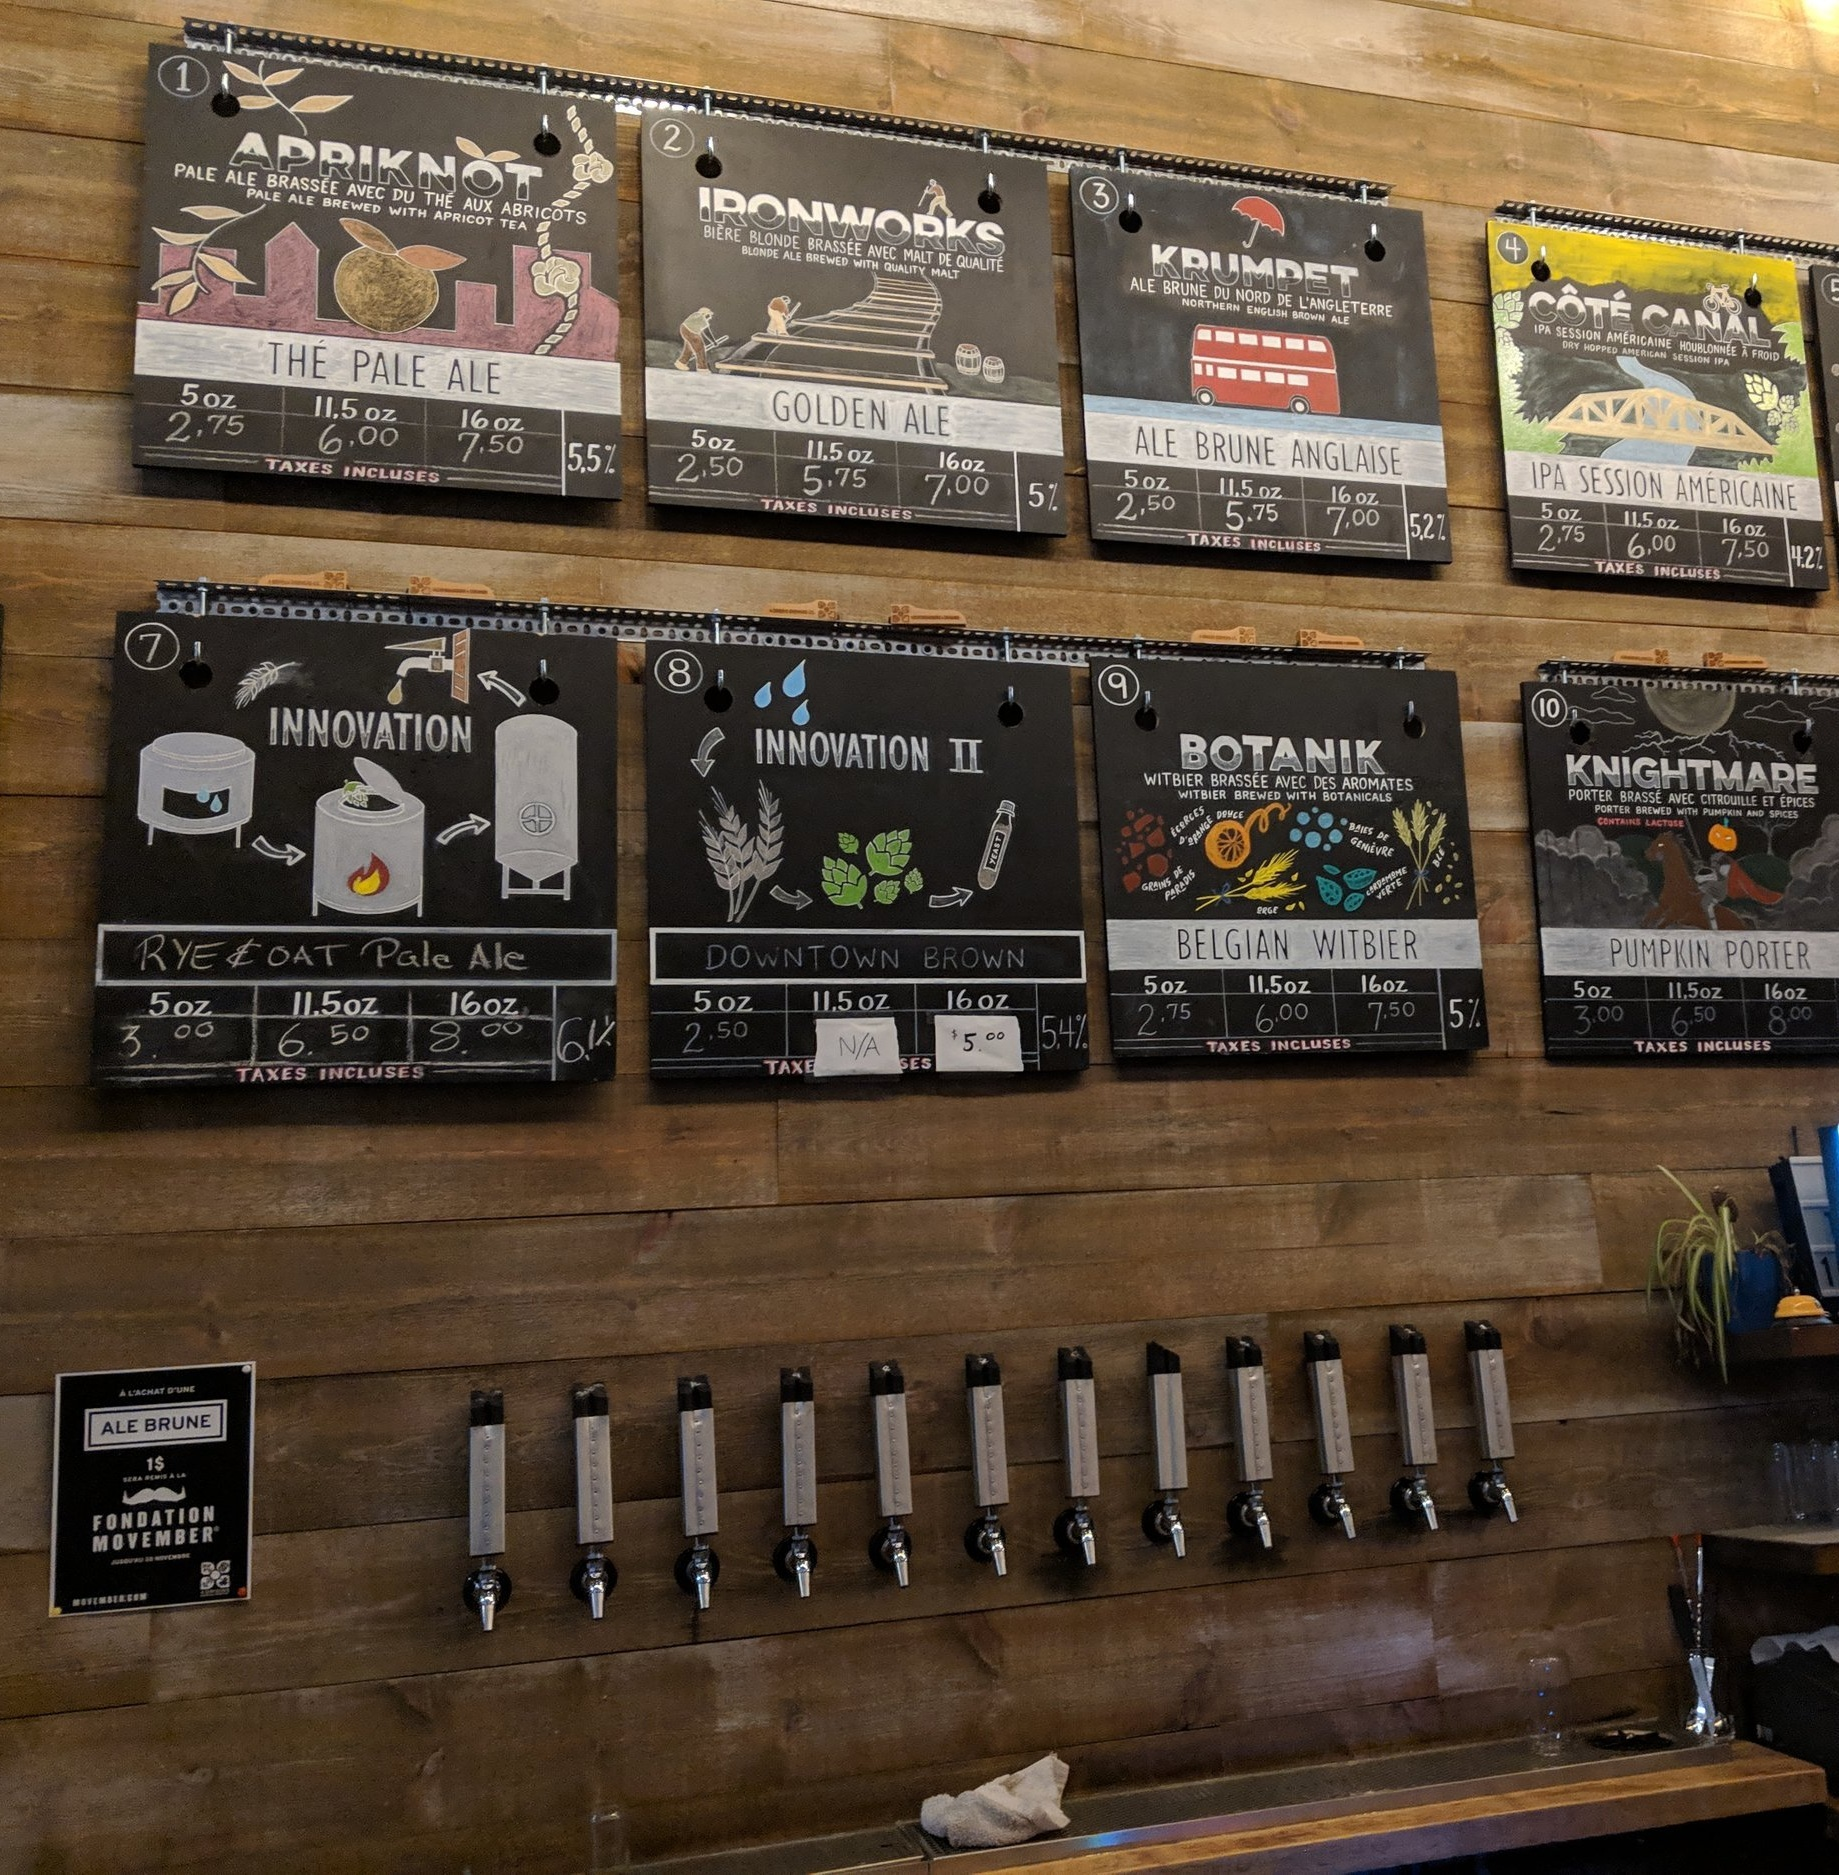 4 origins. A guide of Montreal breweries